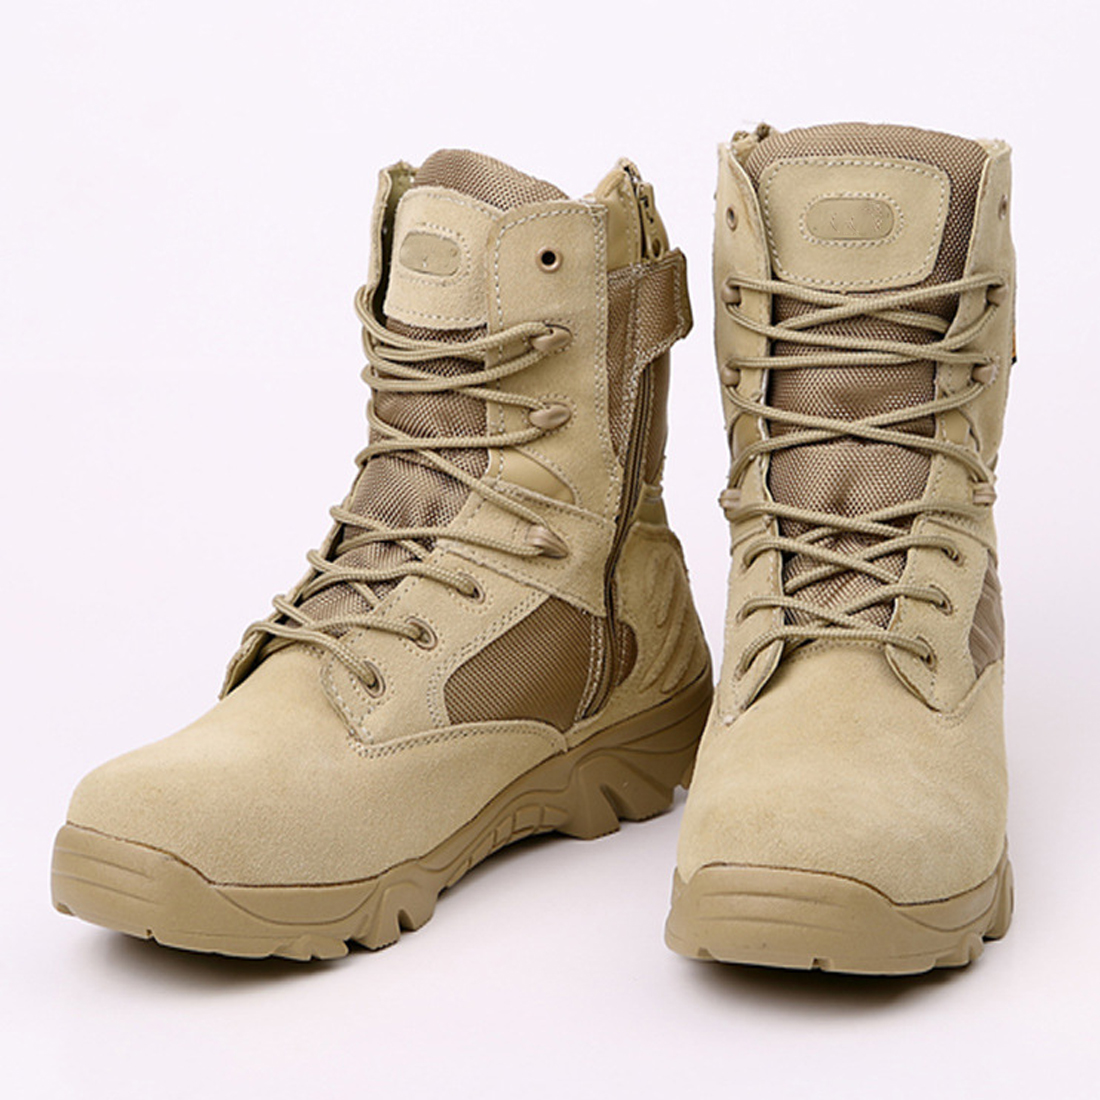 Army Desert Hiking Boots Desert Tactical Military Boots Combat Boots Army Boots Men Shoes Work Outdoor Climbing Men Botas